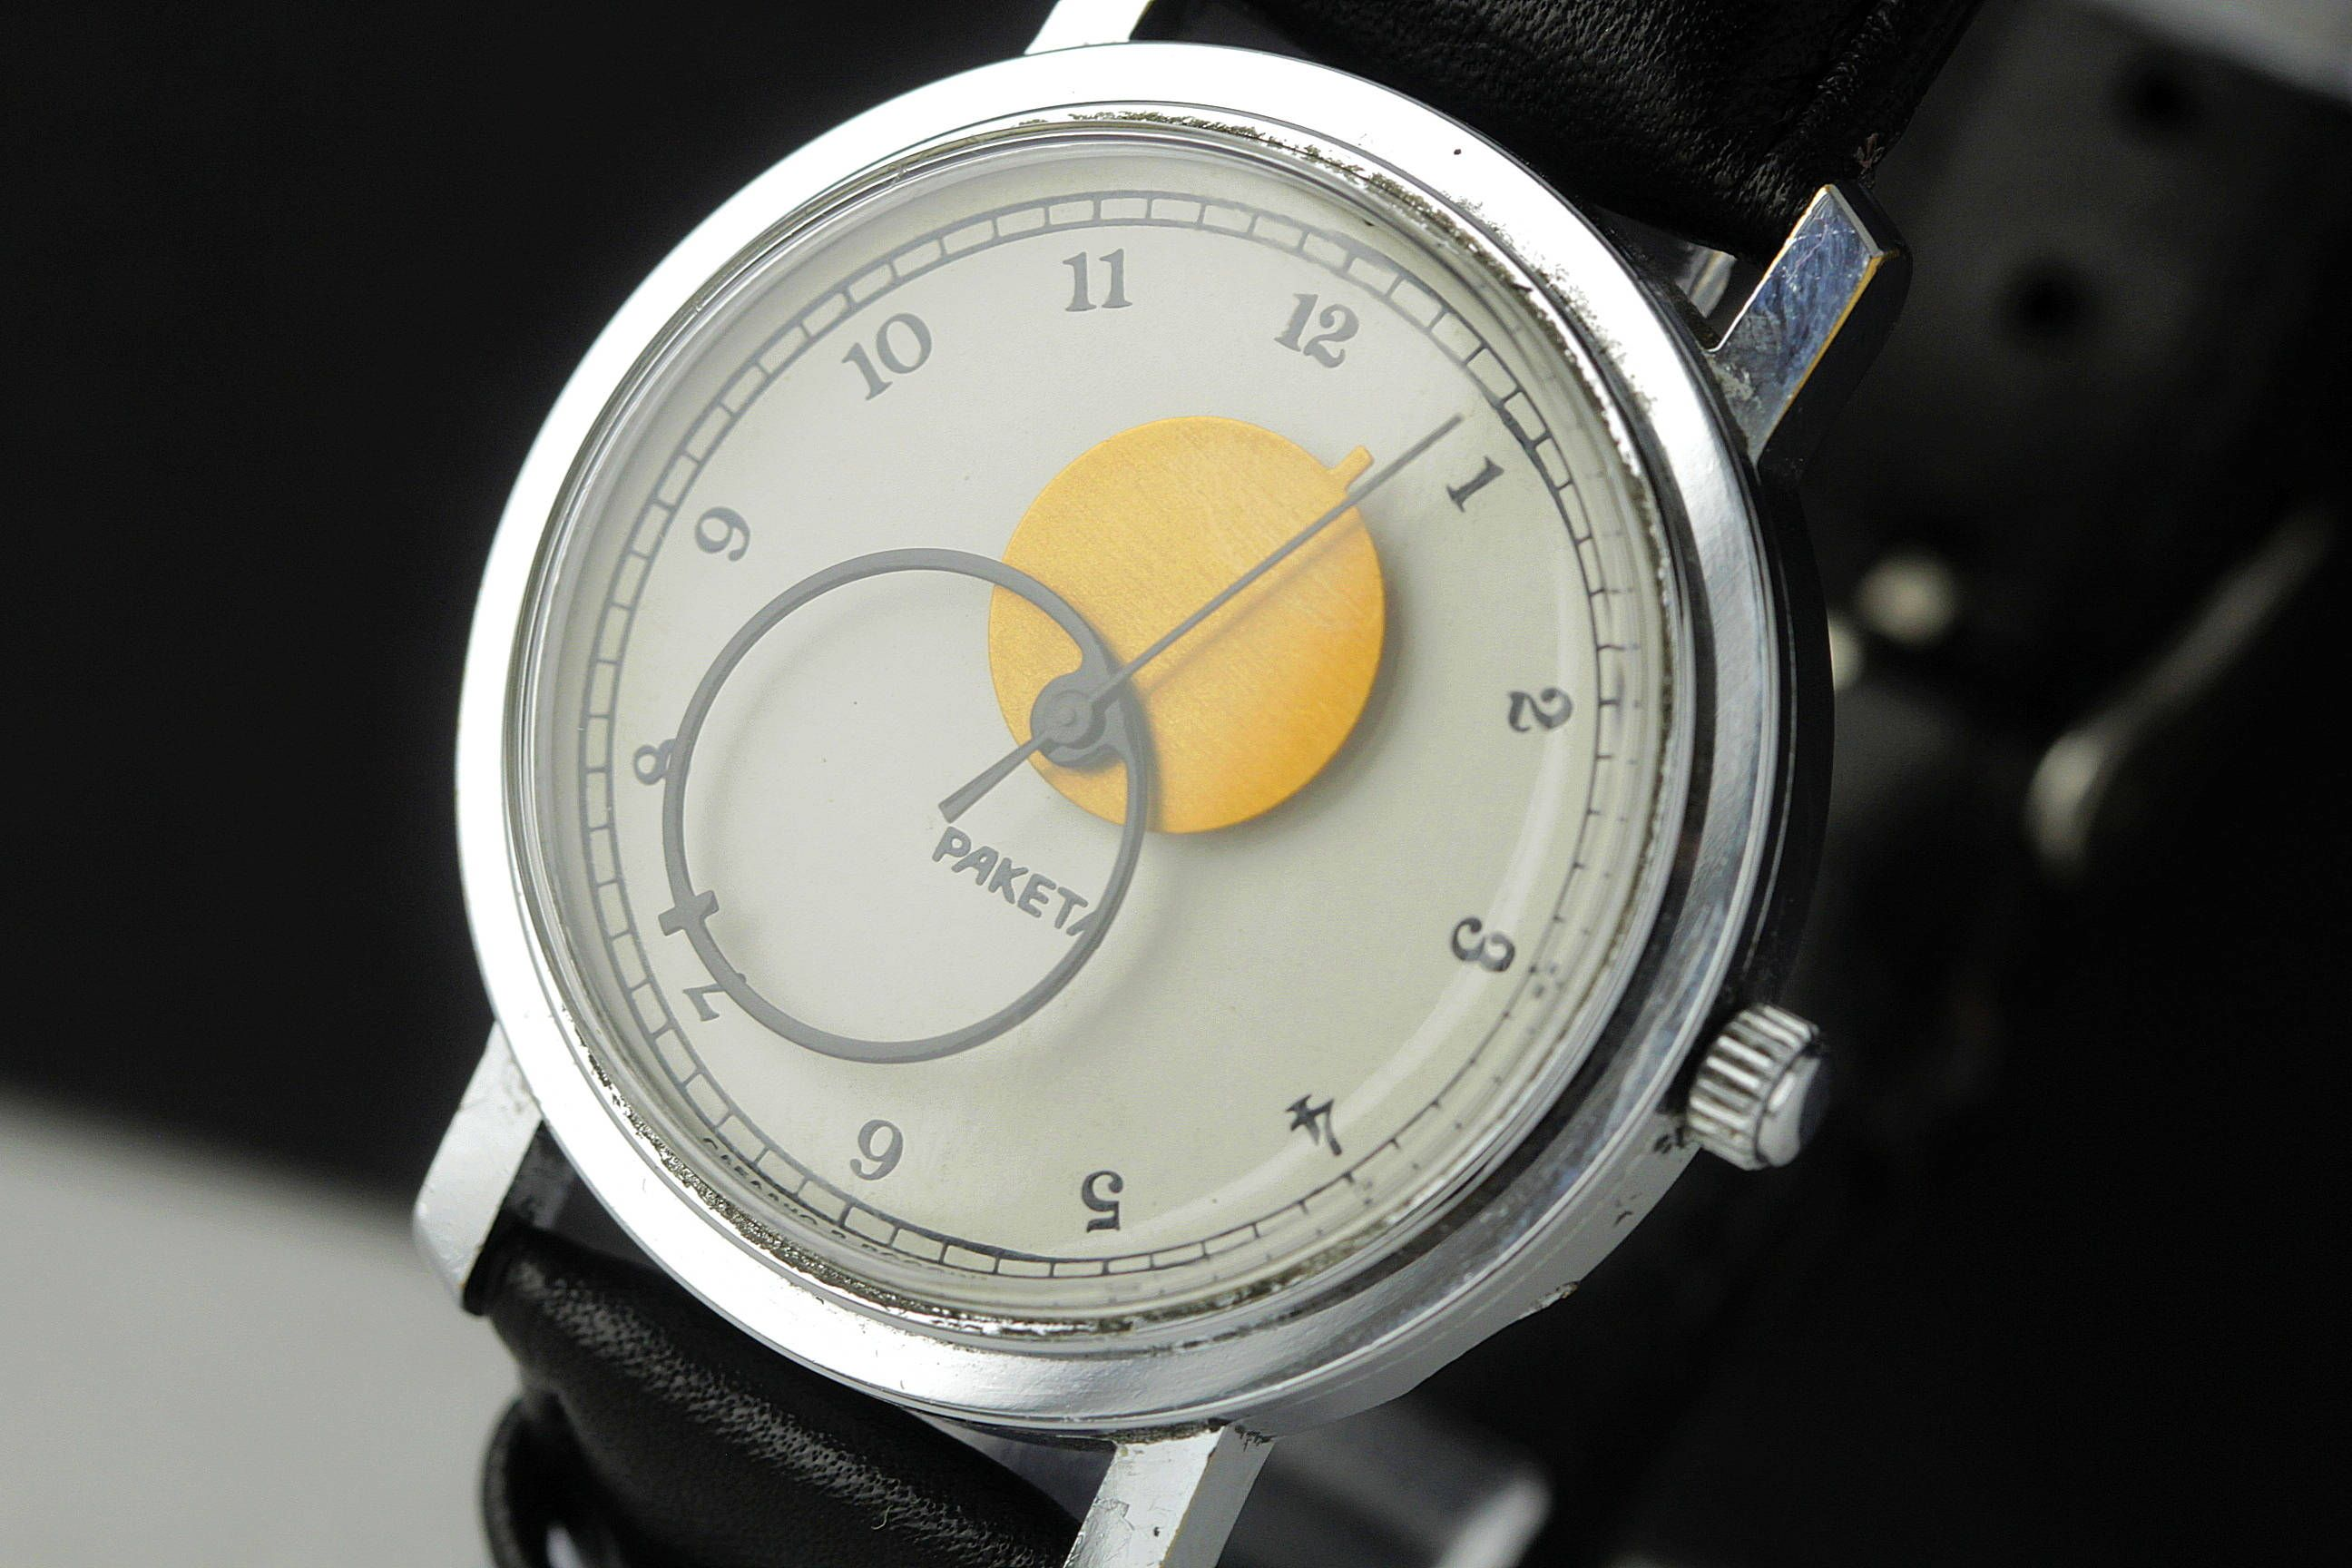 condition great img revue movement watches blind in calibre blinds watch the for guy is service